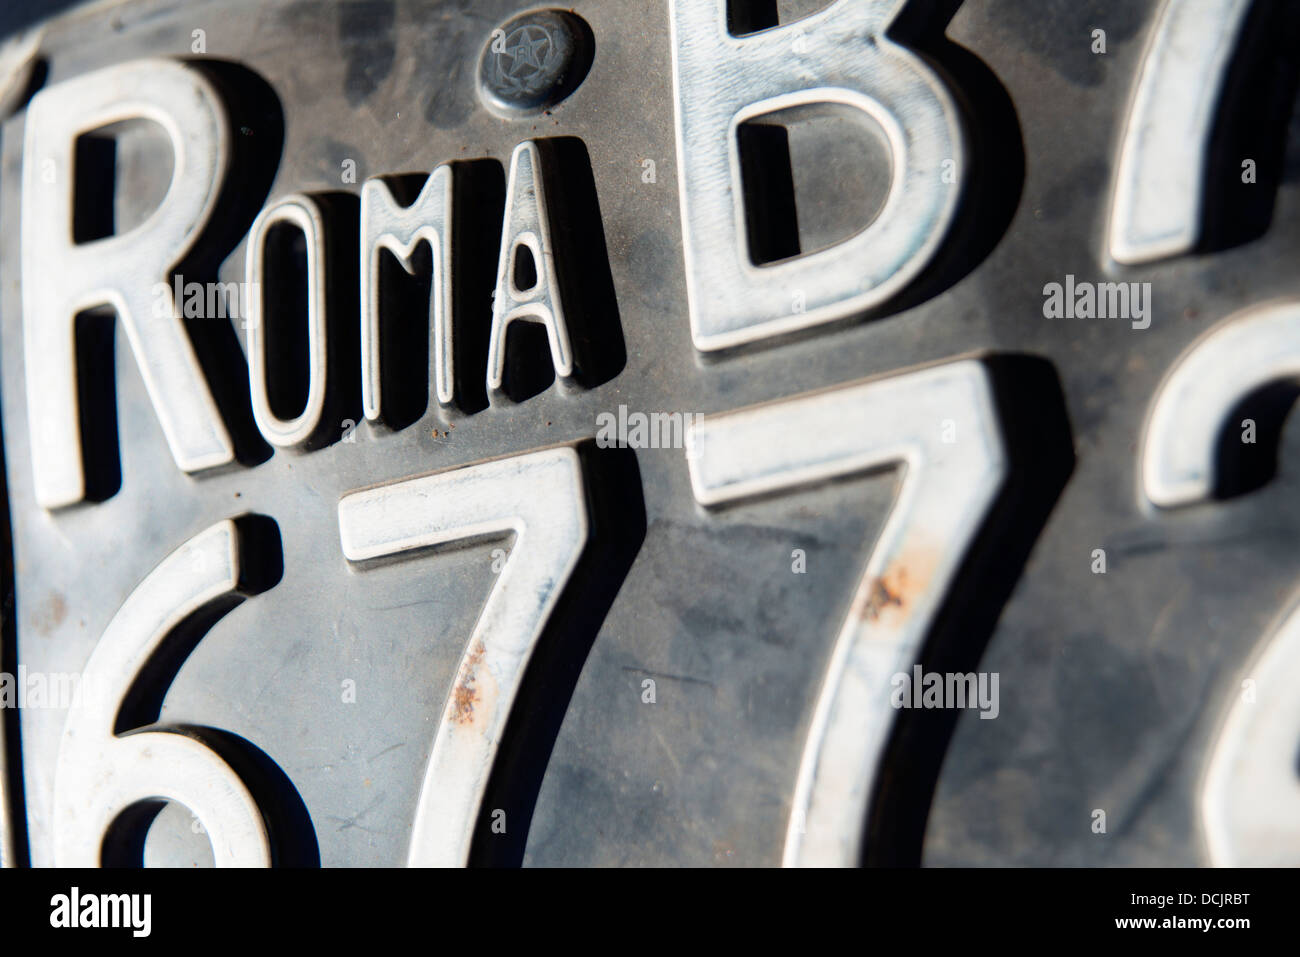 Old roman car registration plate Stock Photo: 59420476 - Alamy